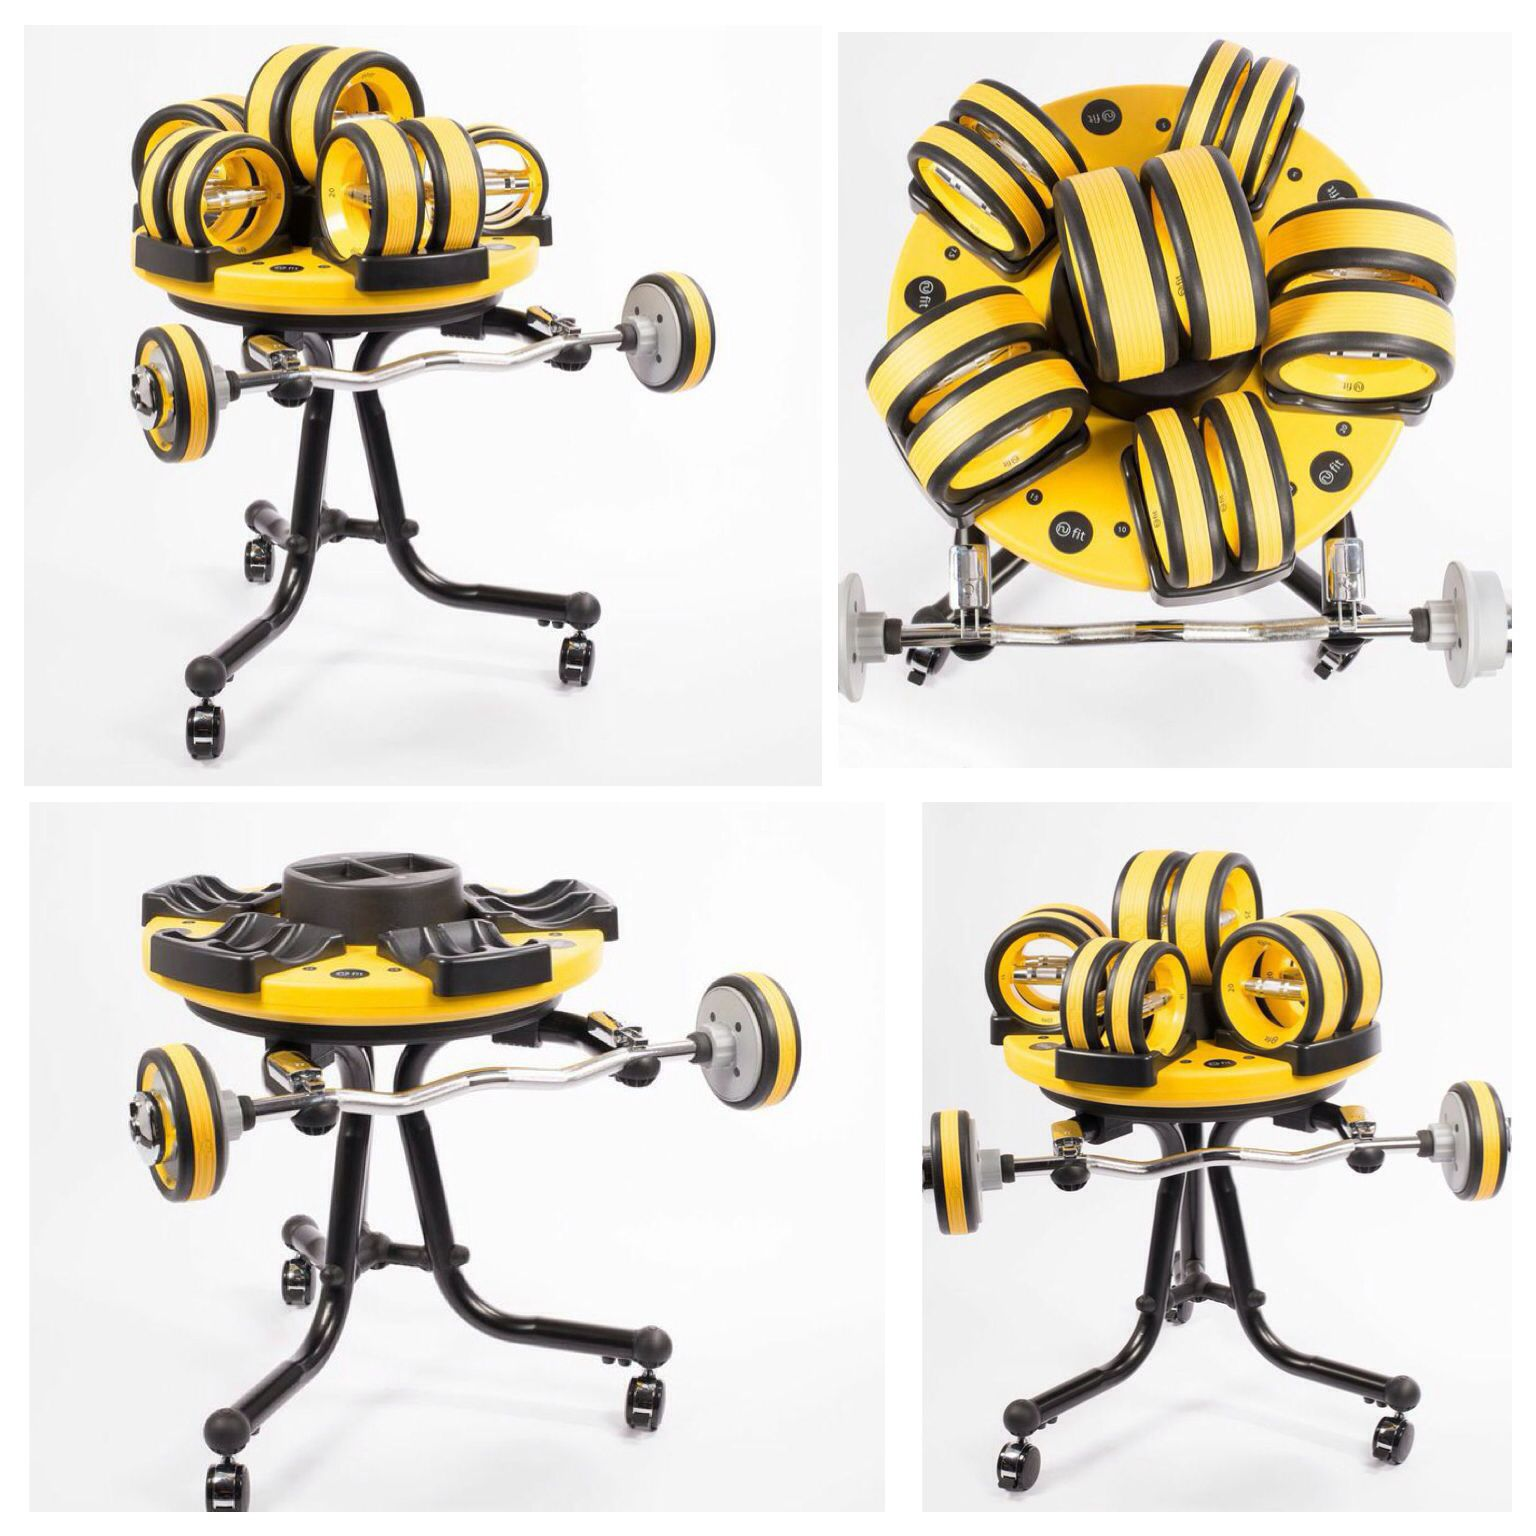 Workout At Your Home, Office And Gym With The Newest